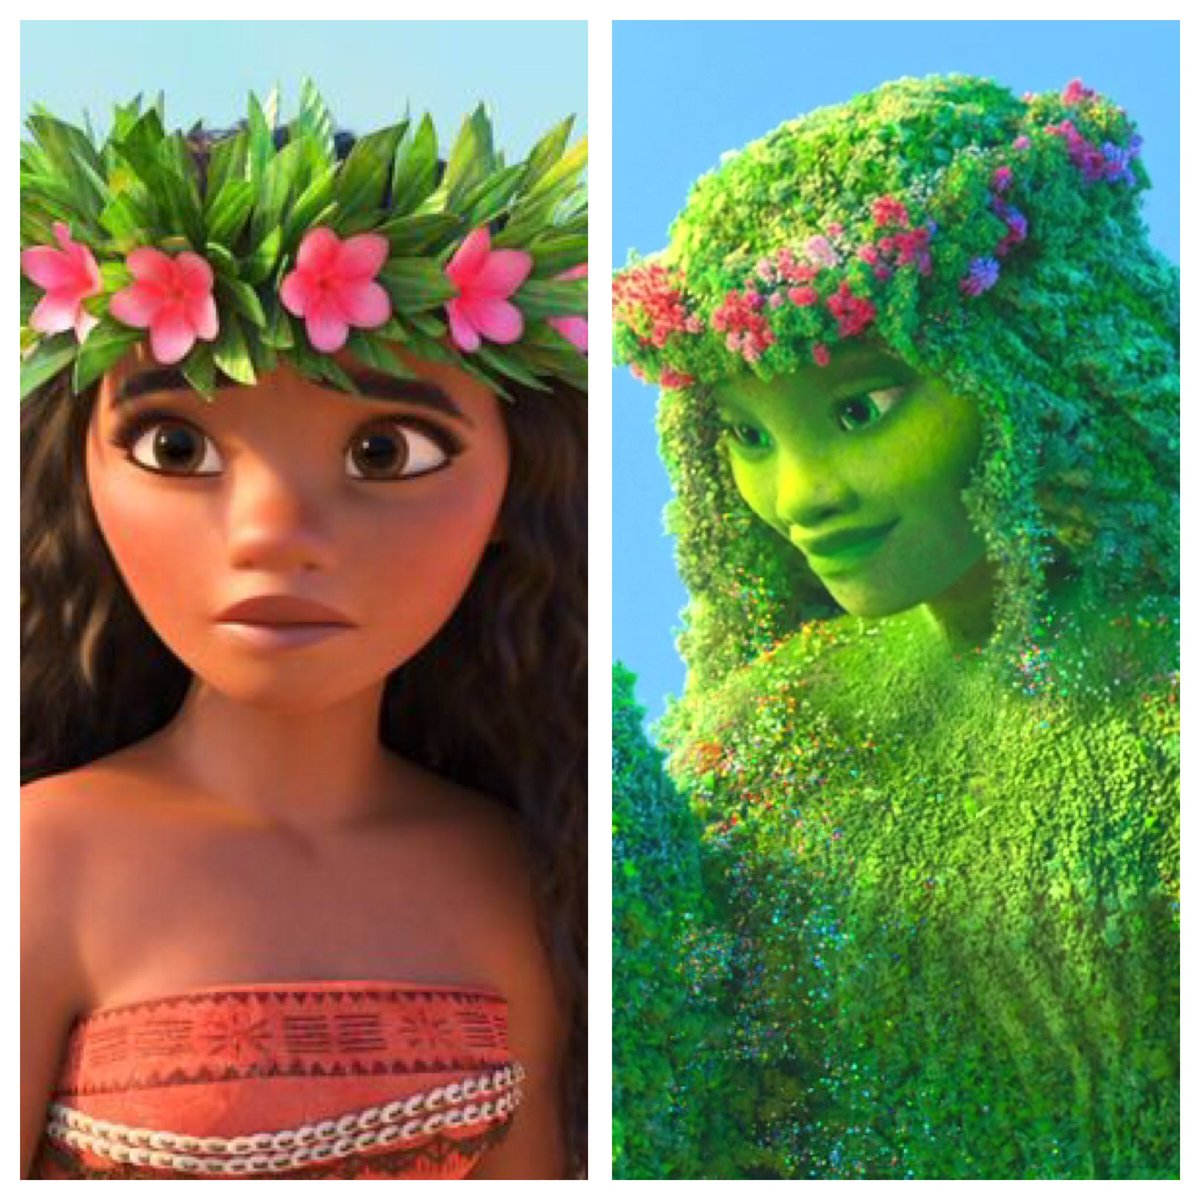 Moana is Te&#39;Fiti reborn so Maui can redeem himself, help transfer her nature heart to Te&#39;Ka &amp; stay human. #InstantFanTheory #Moana  #Disney<br>http://pic.twitter.com/QtvZmO08Ju